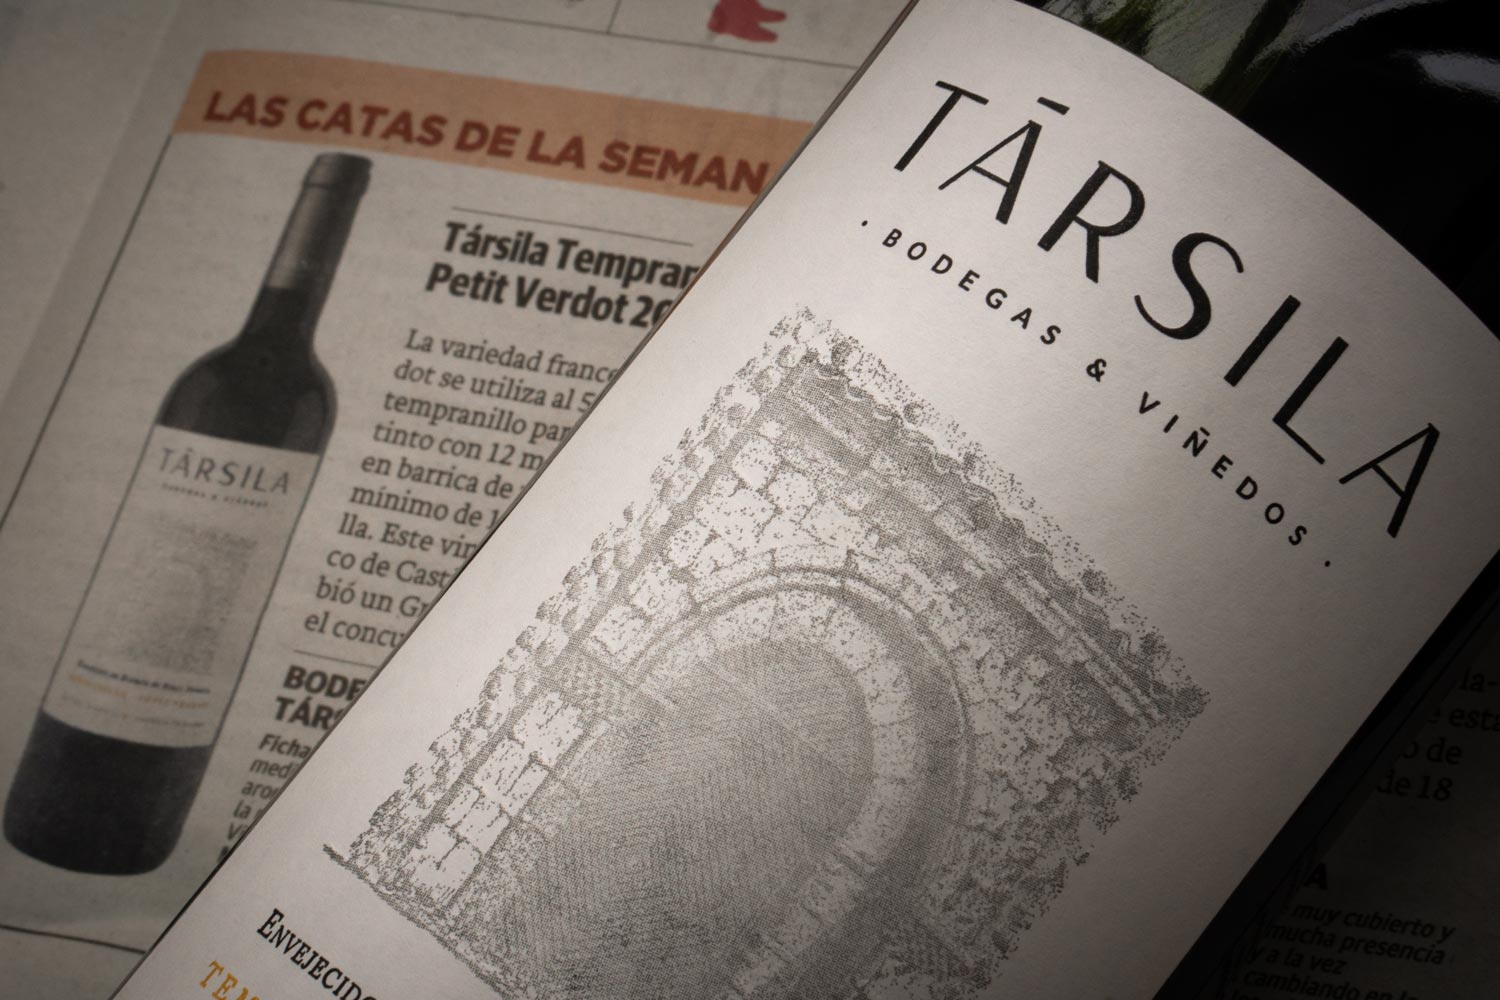 Társila 12 Months highlighted in the wine supplement of the spanish newspaper Norte de Castilla y León